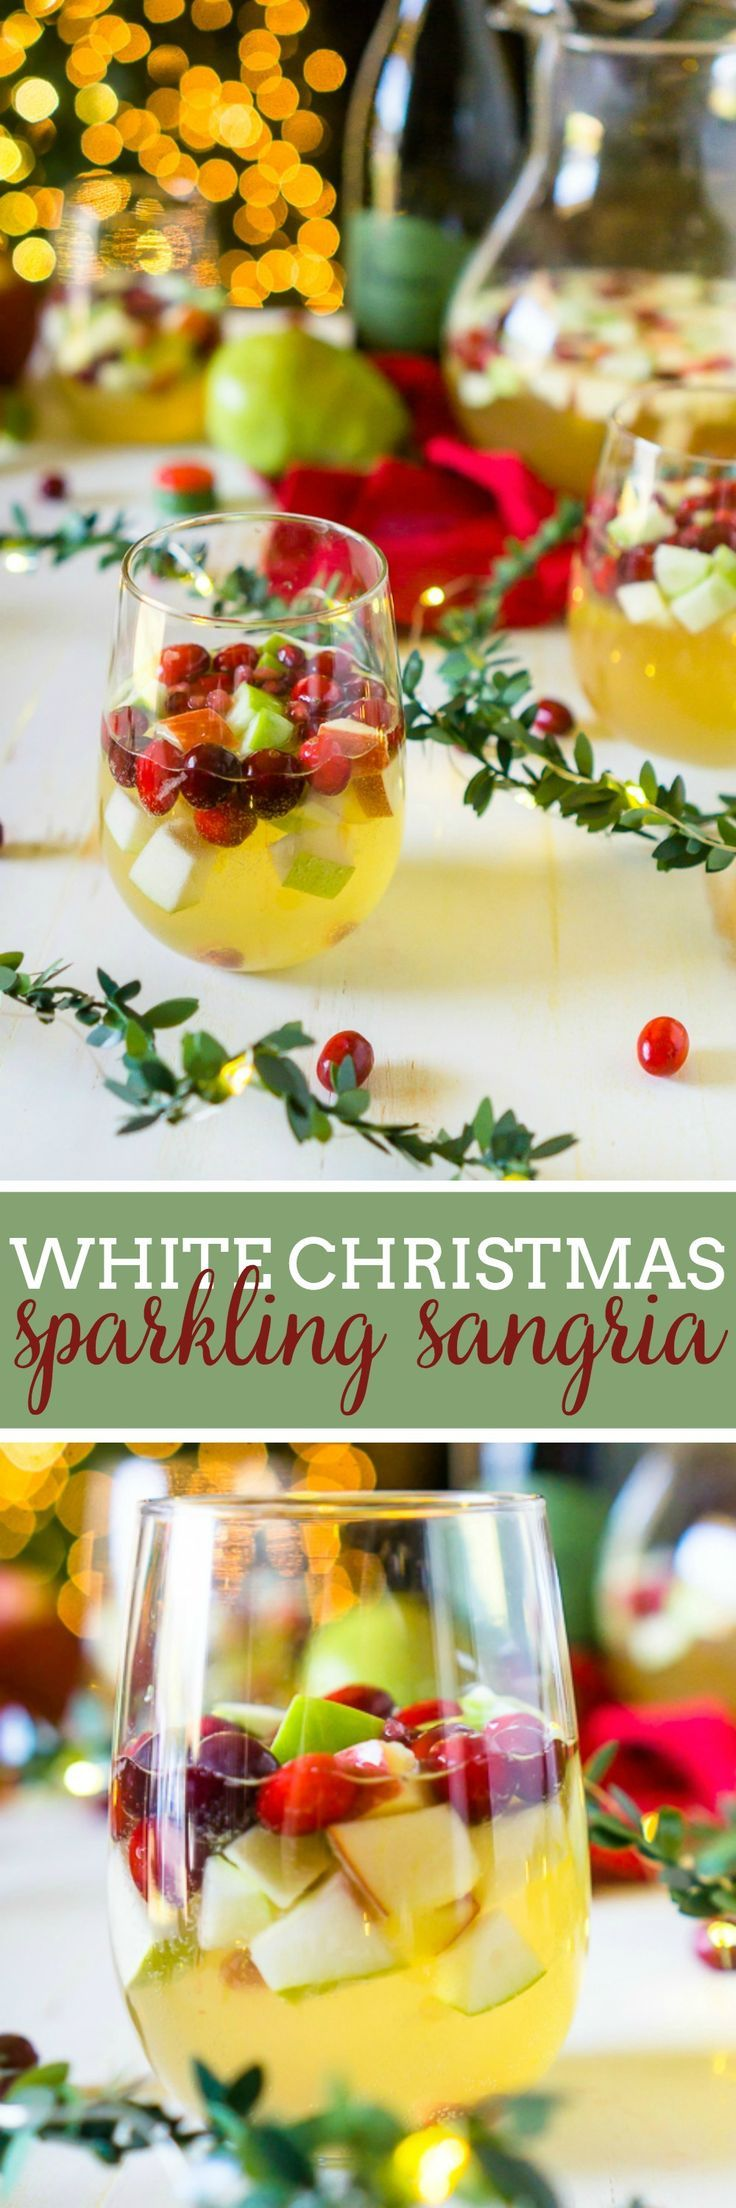 I'm dreaming of a White Christmas Sangria, filled with tasty red and green fruit for a festive holiday cocktail! Fill up the sangria pitcher with red and green apples, pears, cranberries and pomegranates, and some white wine and Prosecco, too, of course, for a sparkling sangria! Lightly sweet with tangy fruit makes a Christmas Sangria Recipe your guests will love! | The Love Nerds #Sponsored #christmascocktail #holidaycocktail #whitesangriarecipe